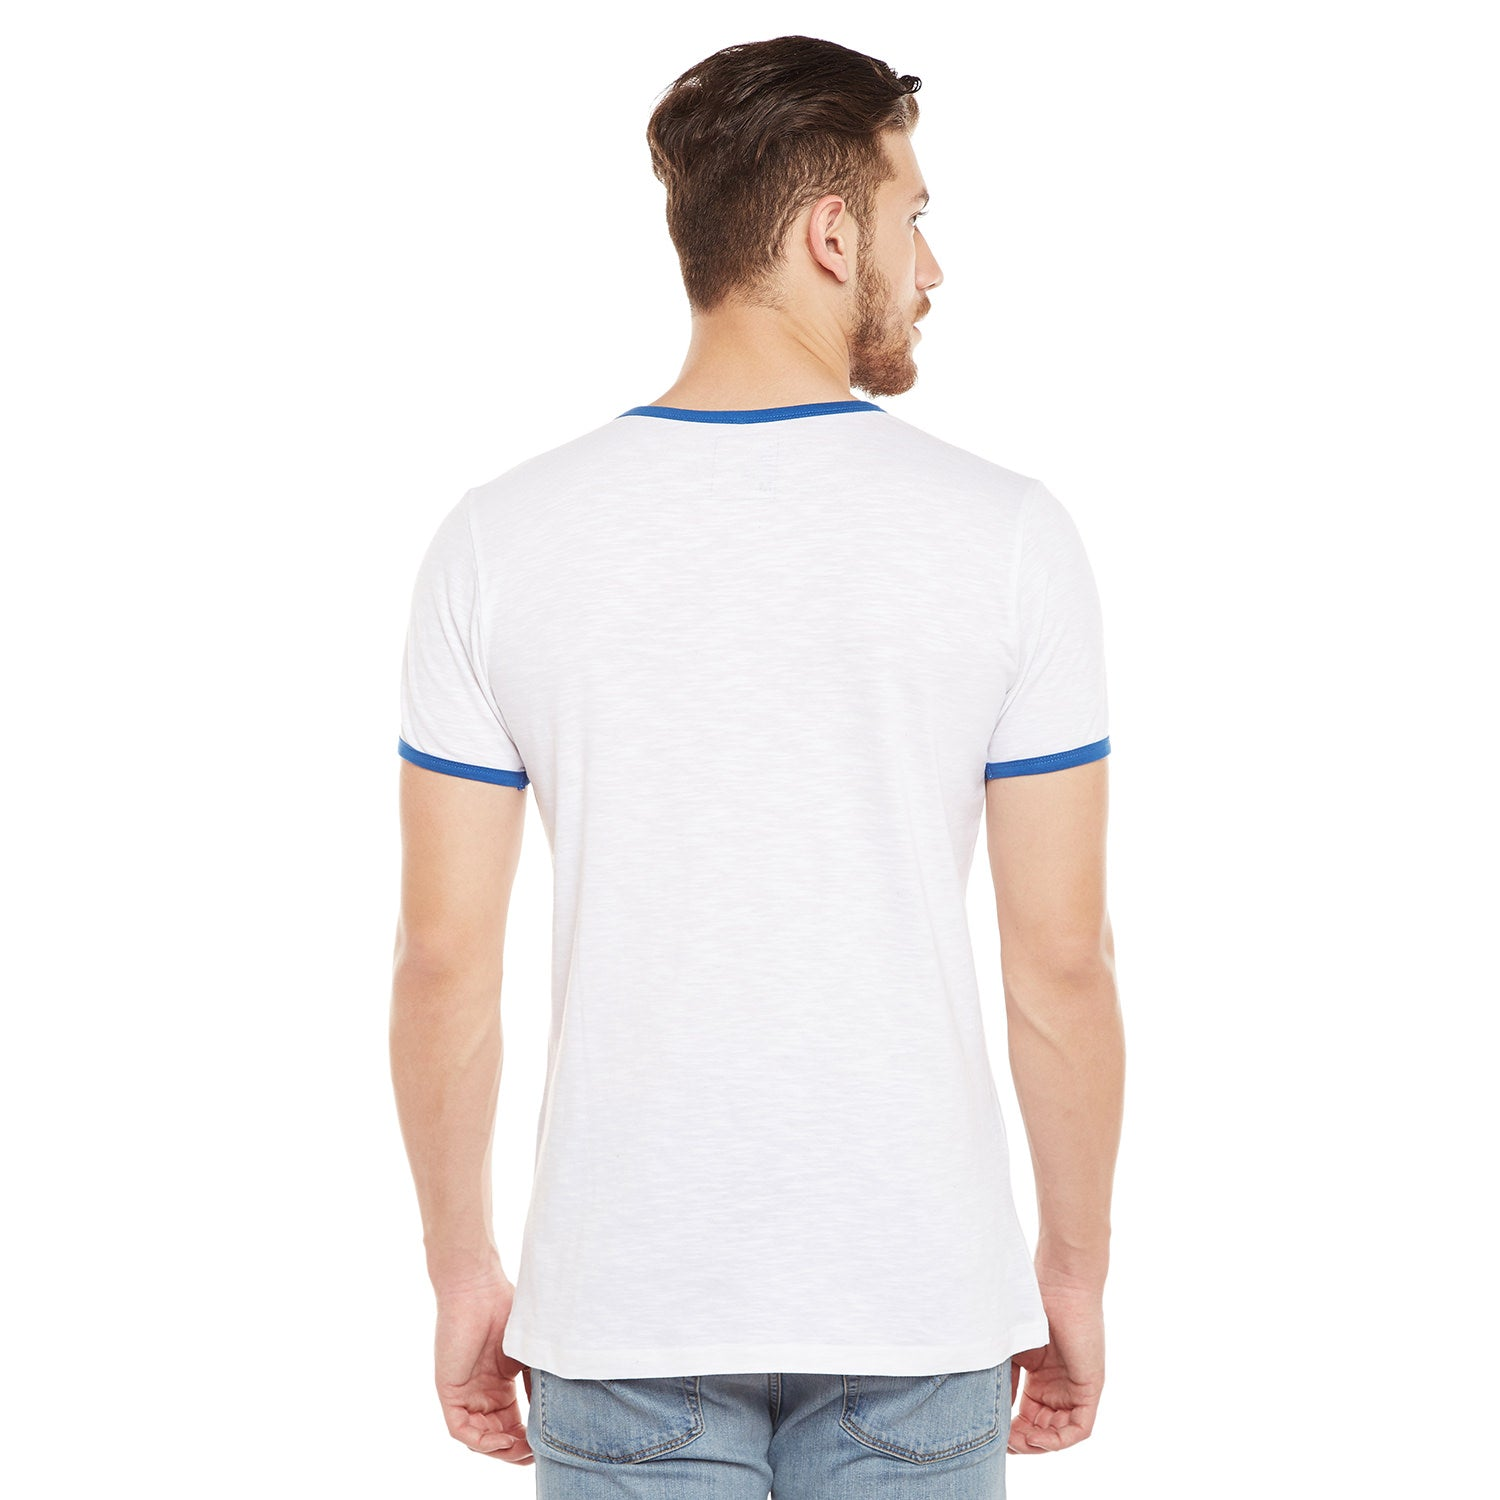 Atorse Mens White Cotton T-Shirt With Badges On Chest